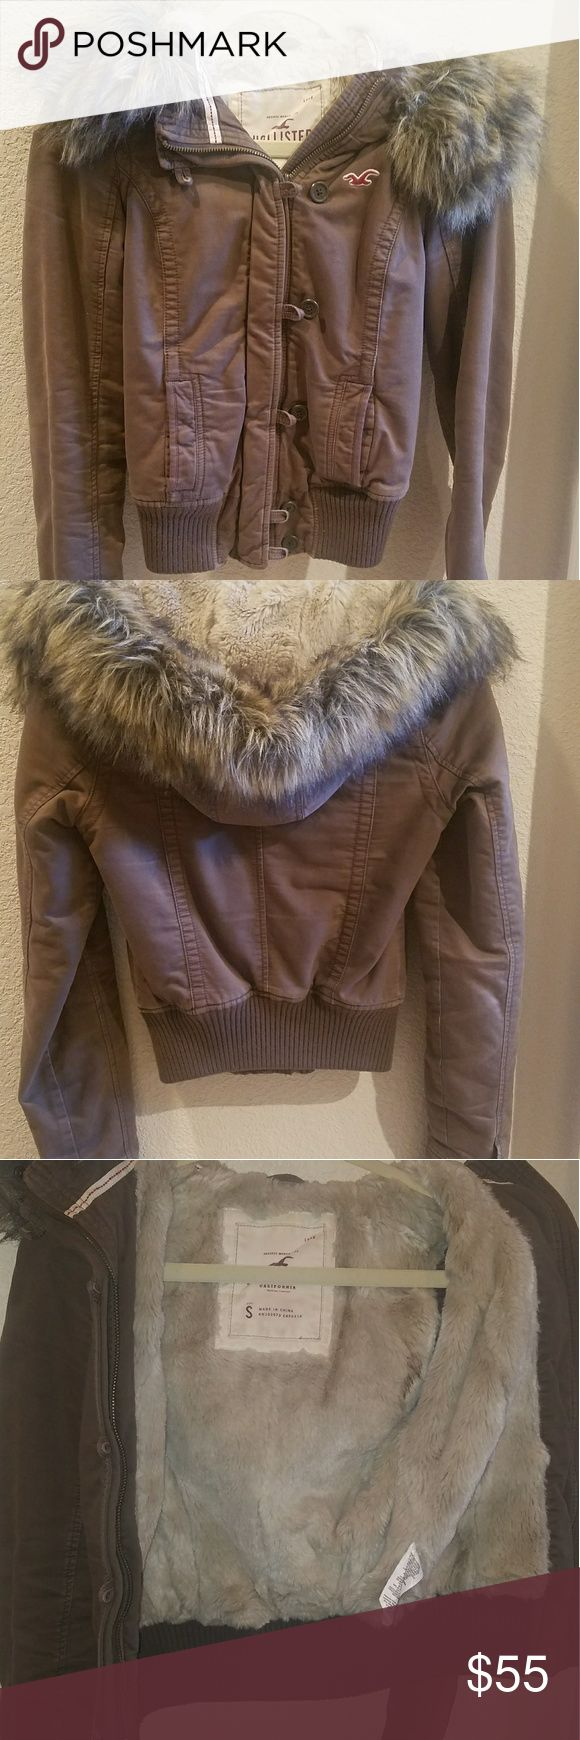 Hollister Jacket with Furry Hood Size small. Very good condition and well taken care of warm brown jacket lined on inner body with cream colored fur. Hood has removable fur, the fur attaches with buttons and snaps. The zipper has caused some discoloration in the zipper flap as shoen in picture 4. Features 2 hand pockets near waist and double zippers. Hollister Jackets & Coats Utility Jackets